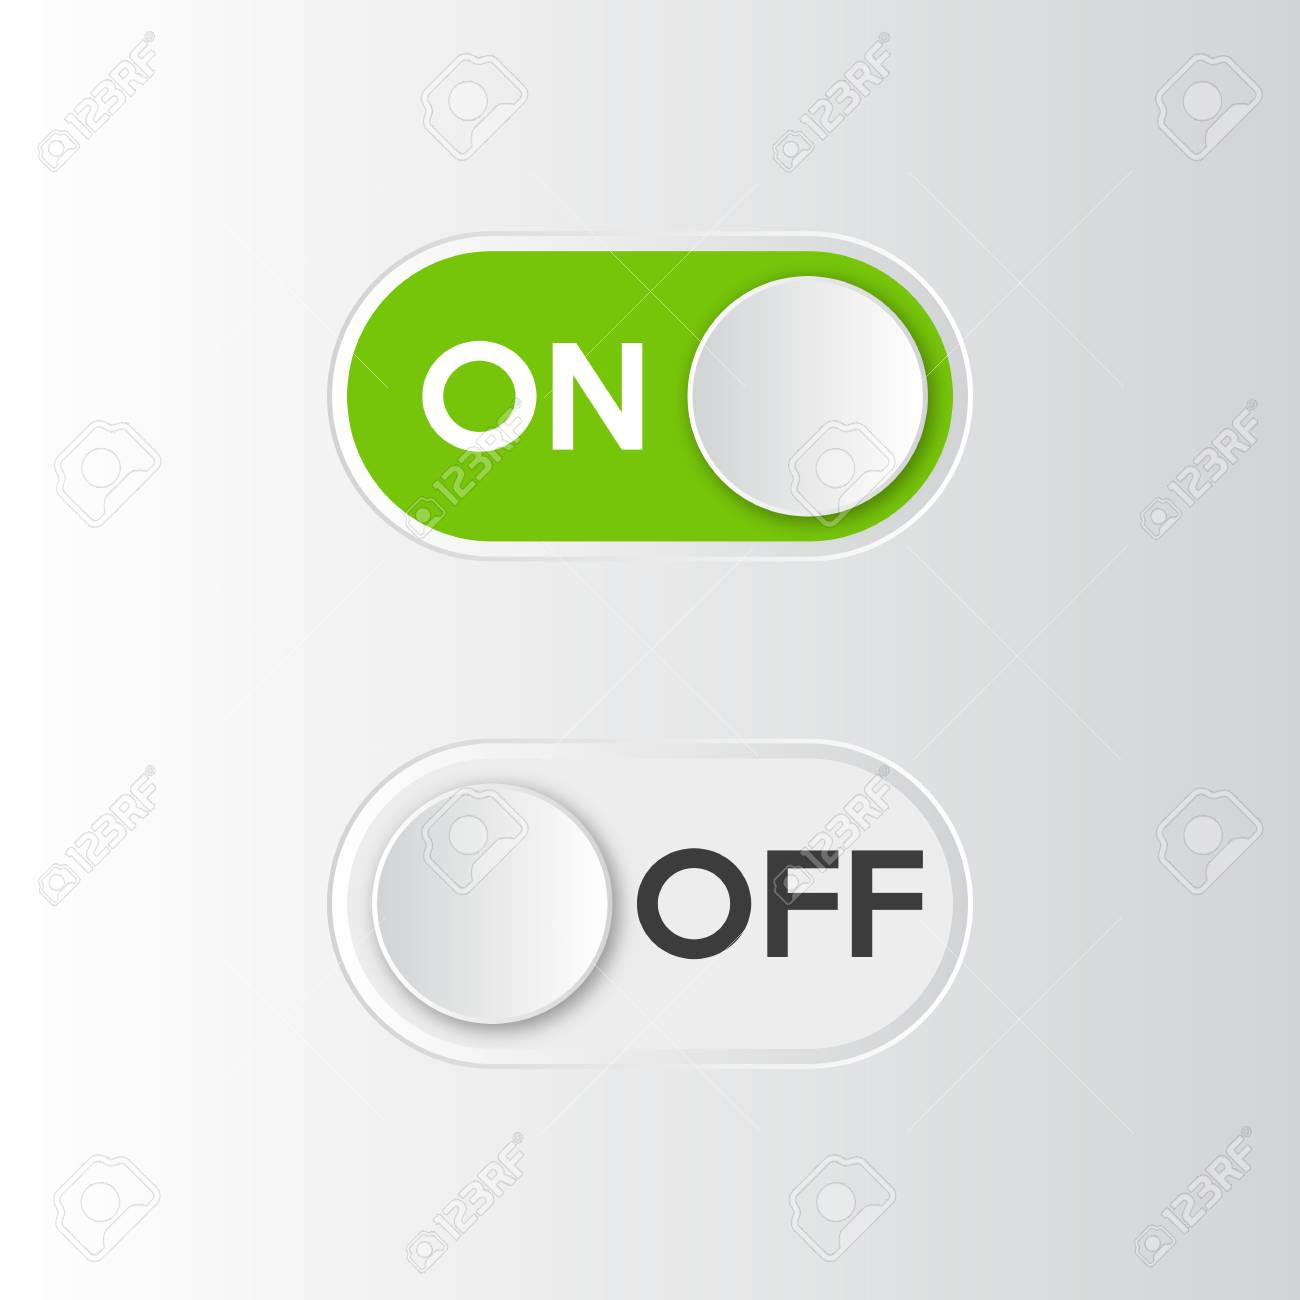 Toggle Button Icon On And Off Switch Vector Illustration Stock 1300x1300